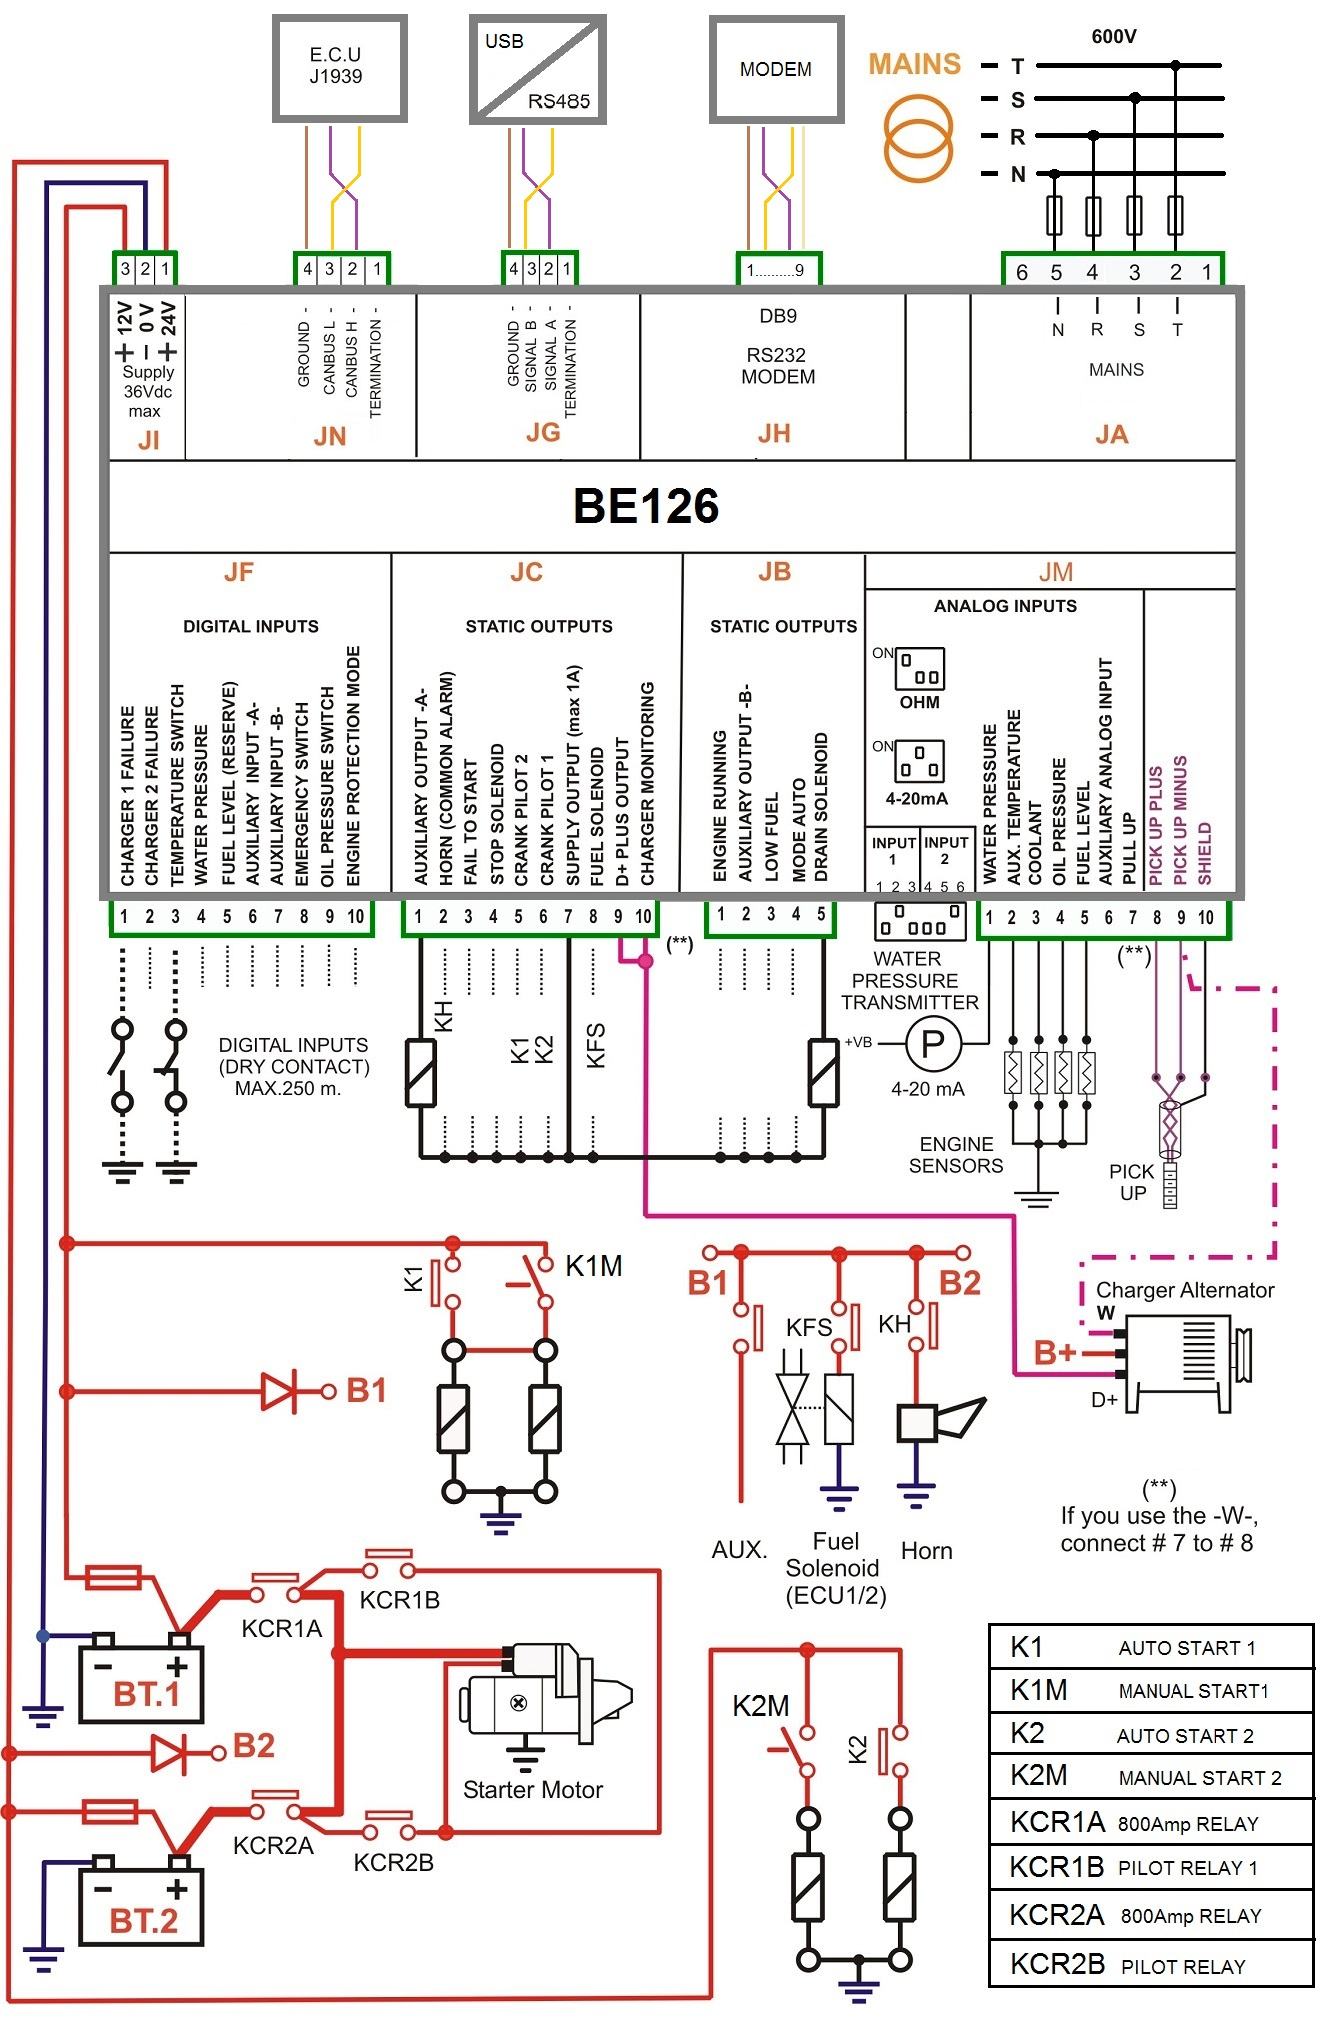 Wiring A Pump Archive Of Automotive Diagram Well Connection Fire Controller Genset Rh Bernini Design Com Pool